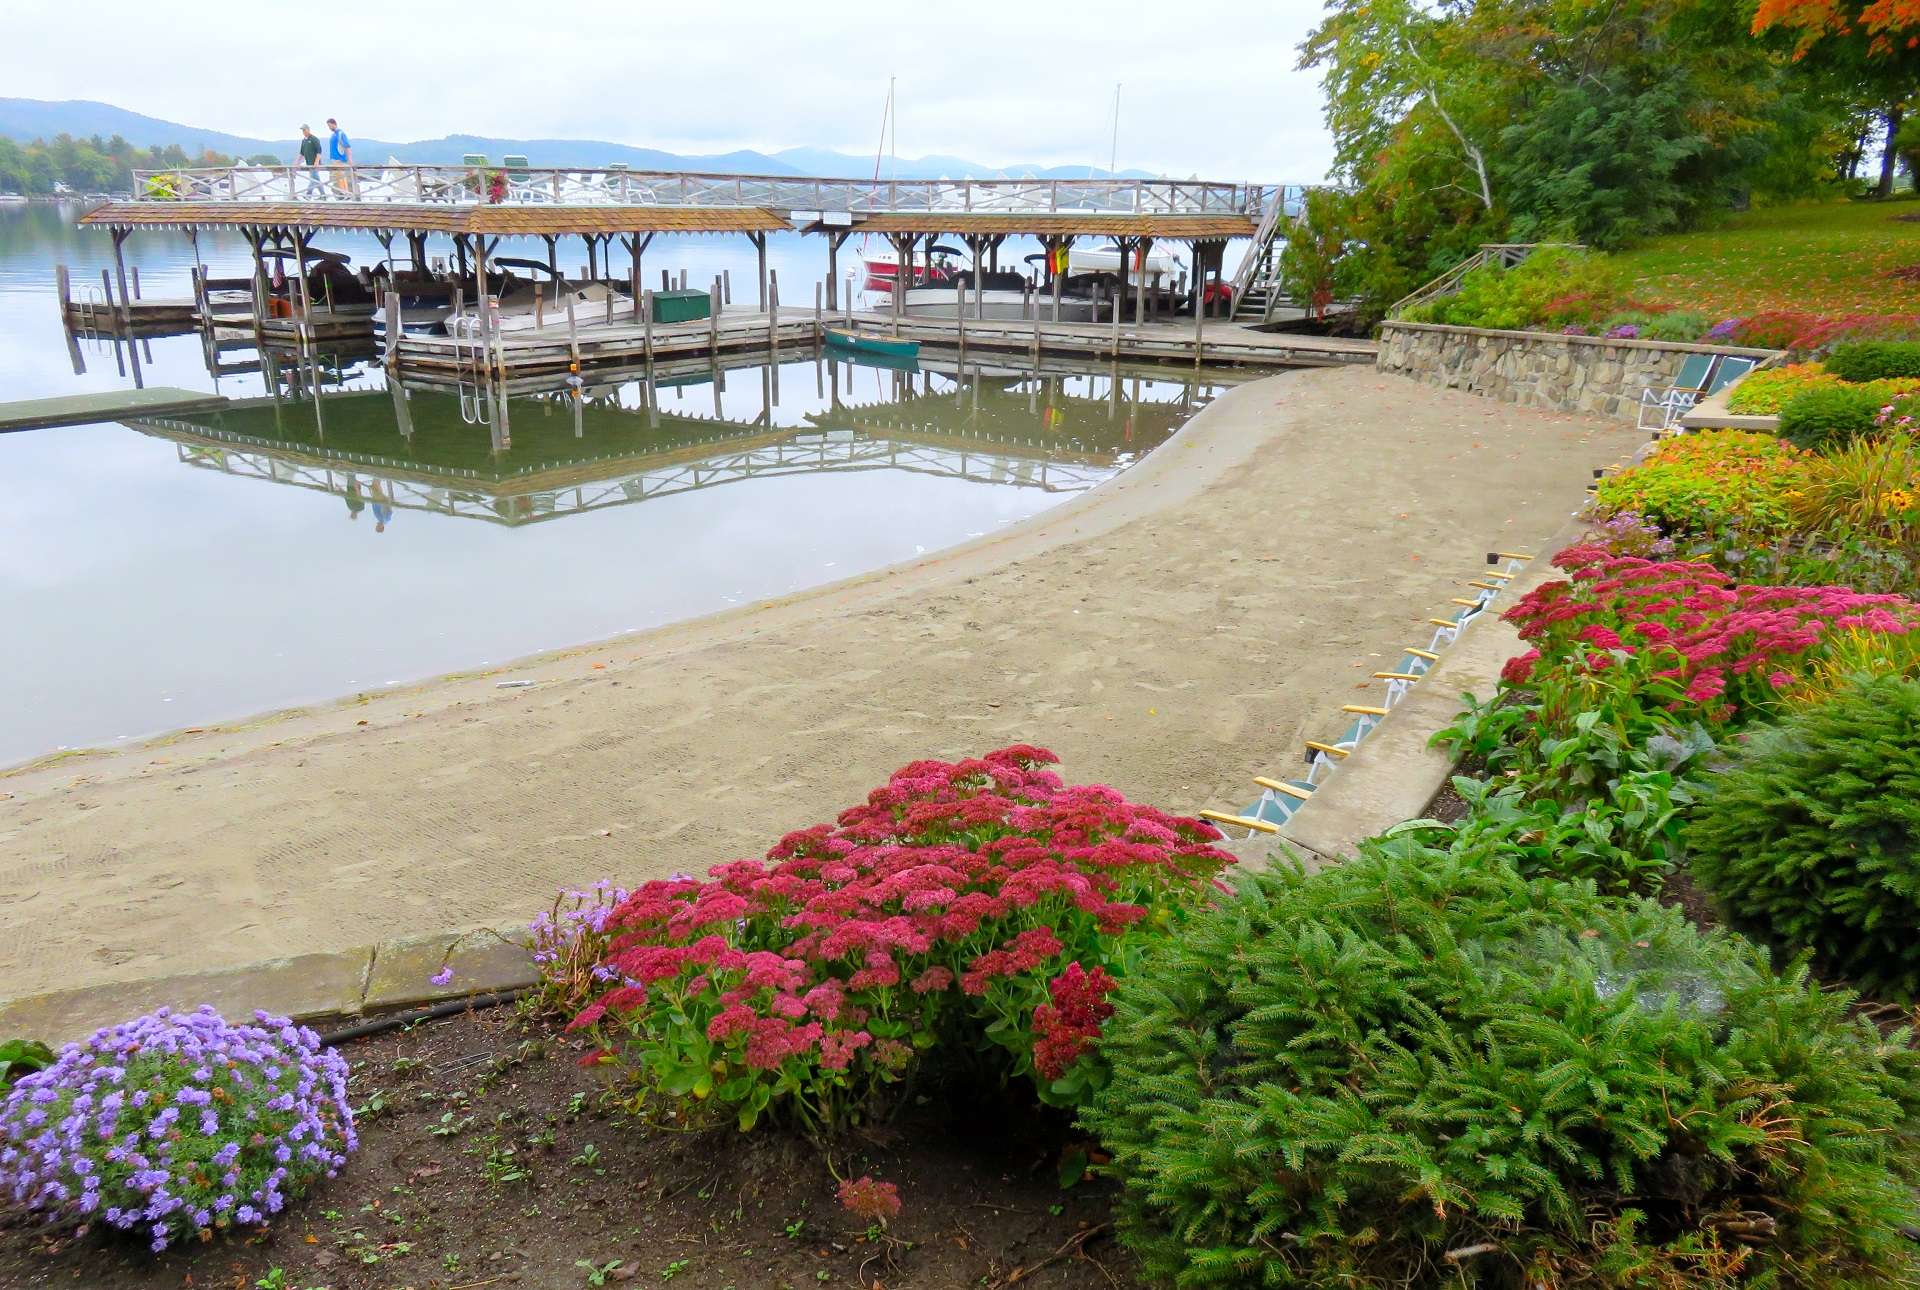 Lake George vacation cabin rental beach in Fall at Takundewide Cottages on Lake George